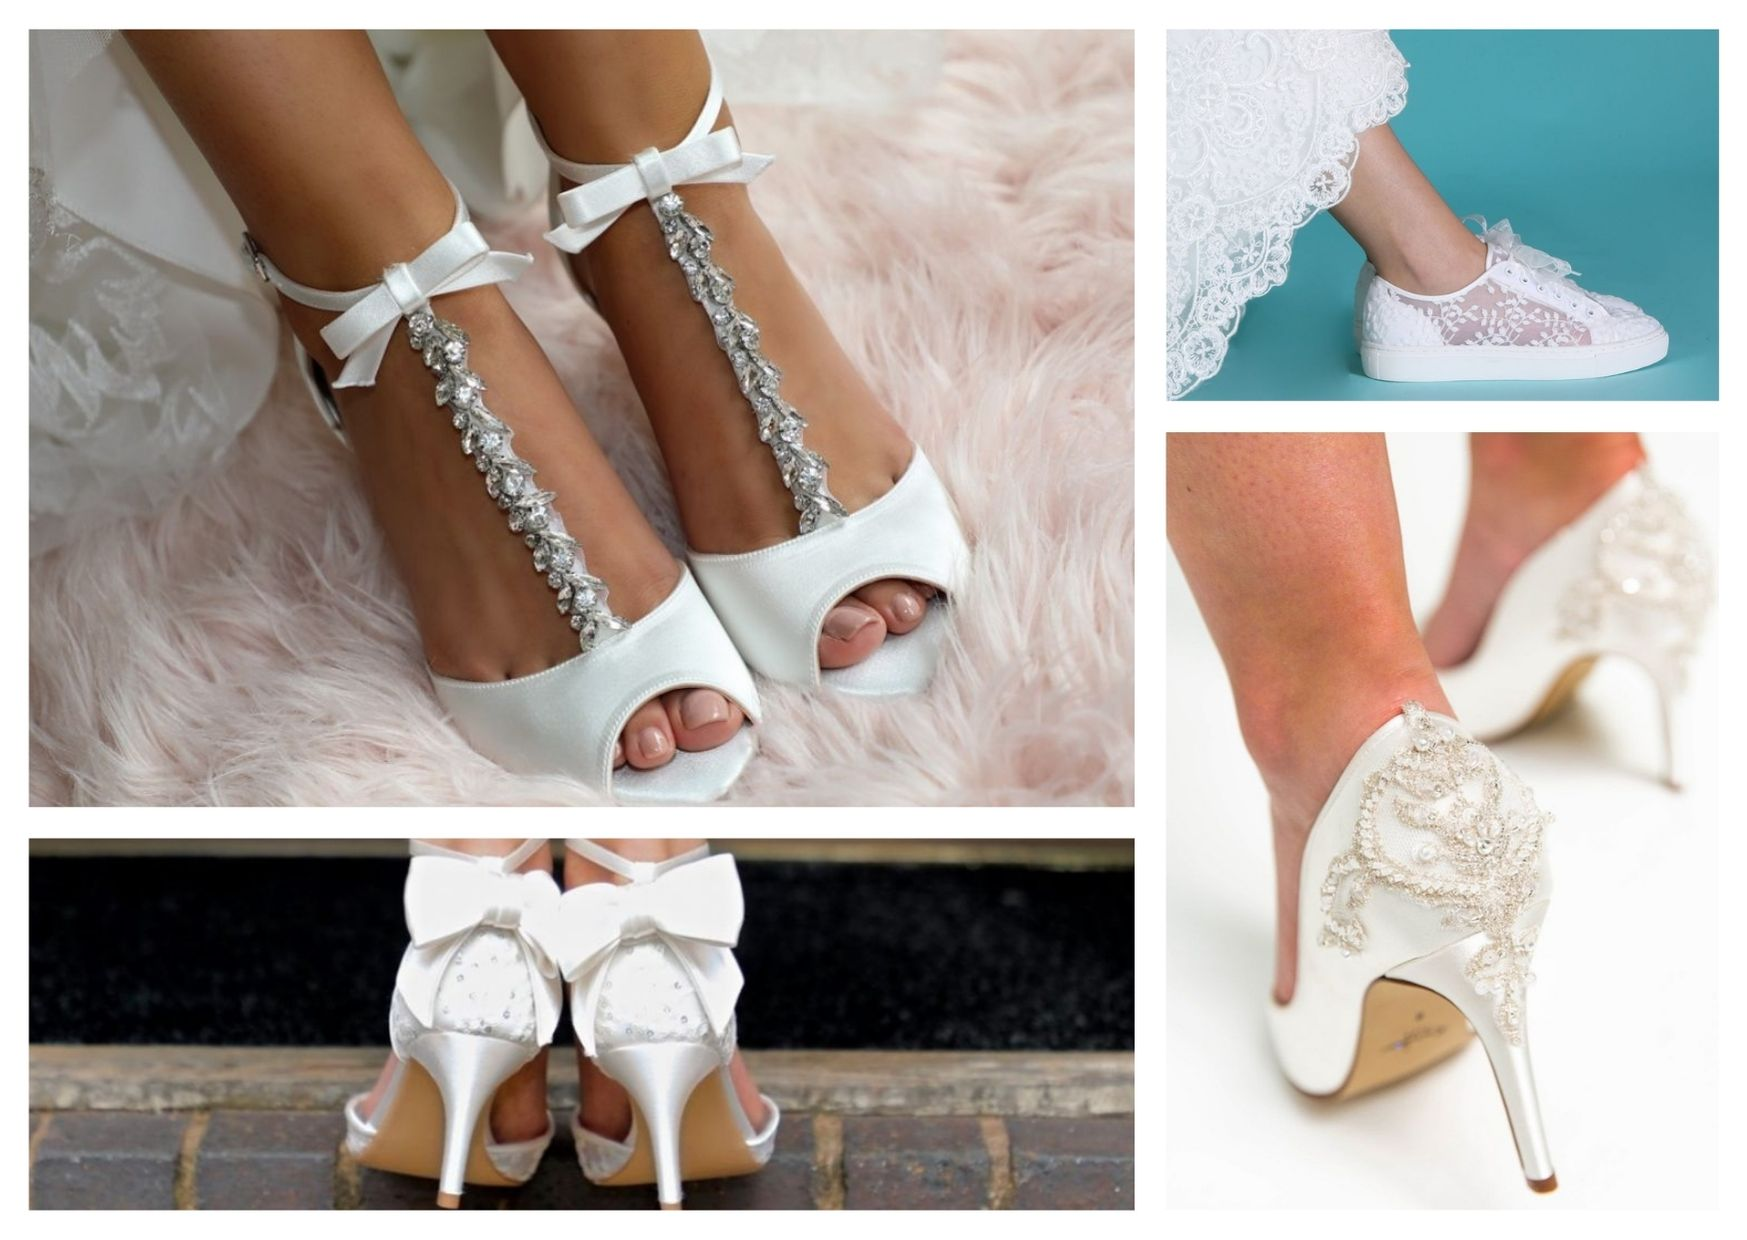 Wedding Shoes Do's And Don'ts